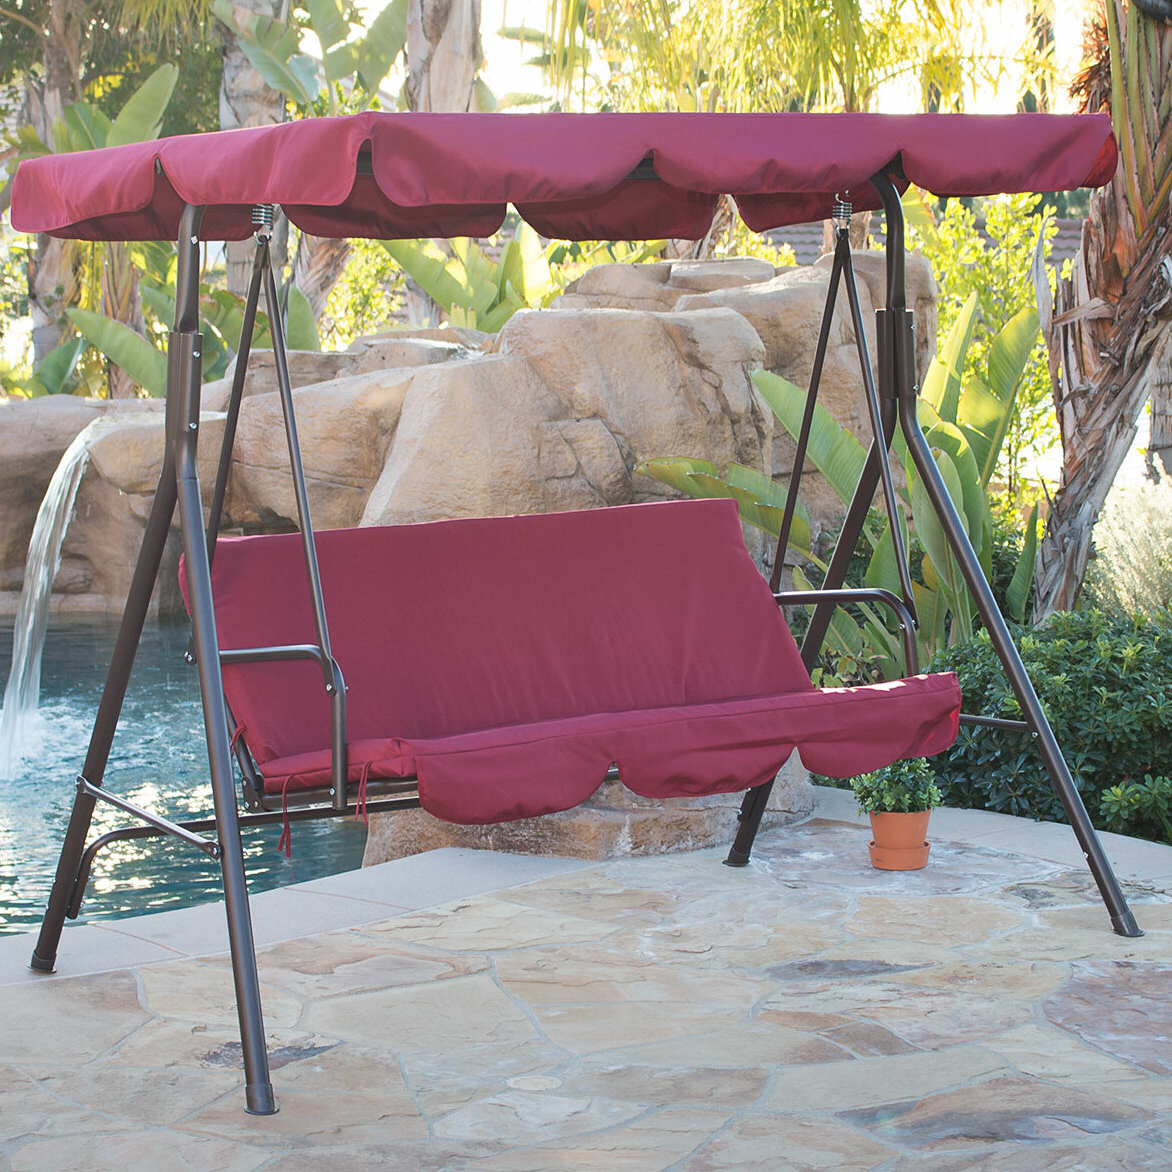 Brack Canopy Porch Swing With Stand Throughout Well Known Canopy Patio Porch Swing With Stand (View 9 of 25)